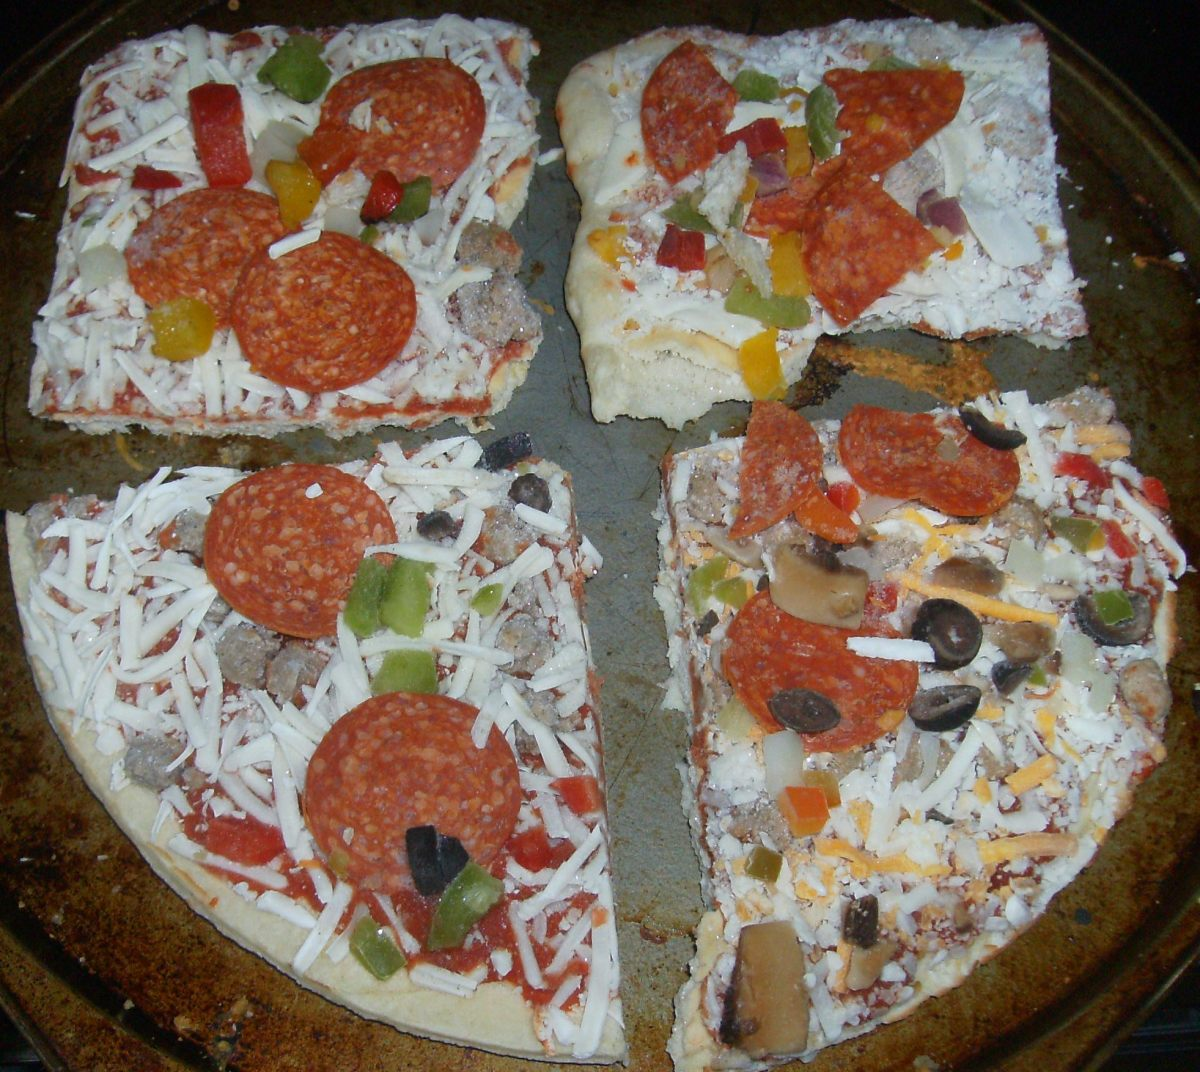 Note how frozen DiGiorno and Freschetta look alike (two square pieces at top of photo) and how Red Baron and Tombstone (two bottom pieces) resemble each other. Bottom right is the Red Baron; you can see it has more ingredients than the others.